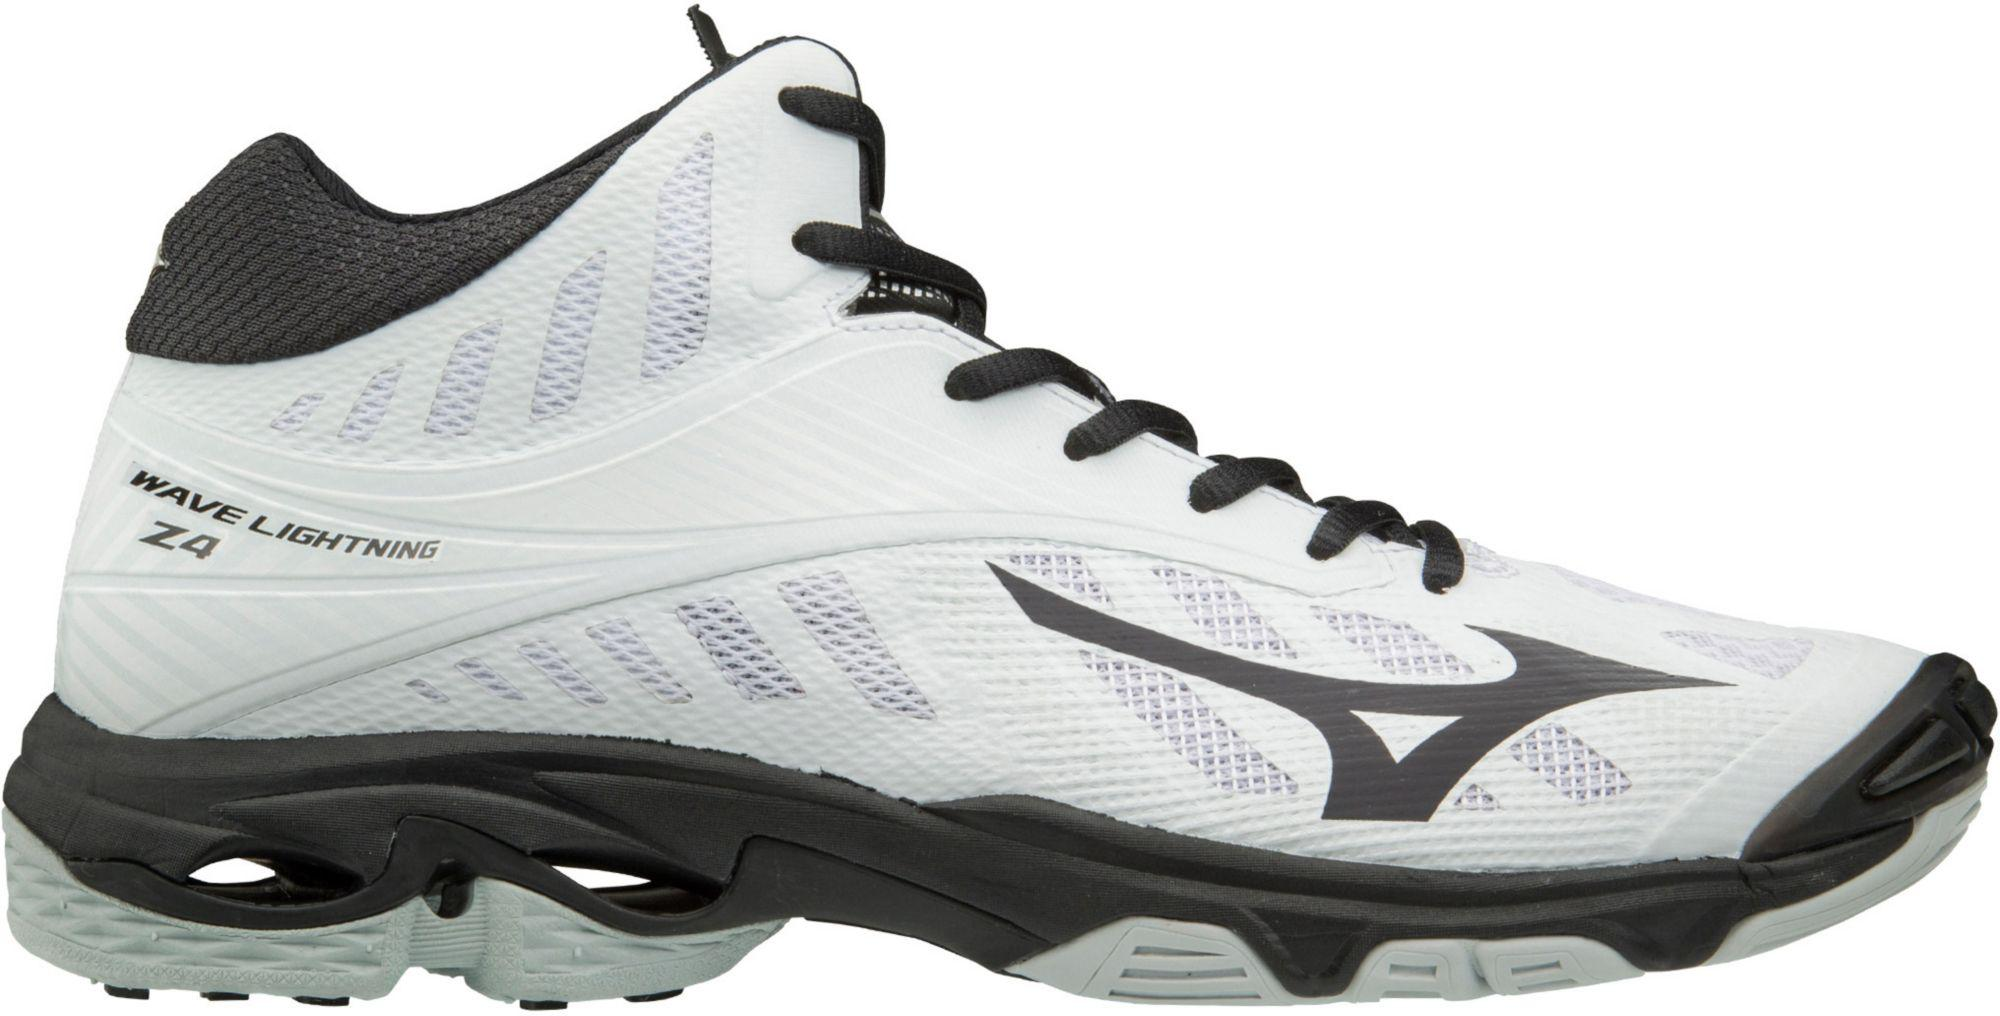 sports shoes a2f78 a32ad Lyst - Mizuno Wave Lightning Z4 Mid Volleyball Shoes in Black for Men